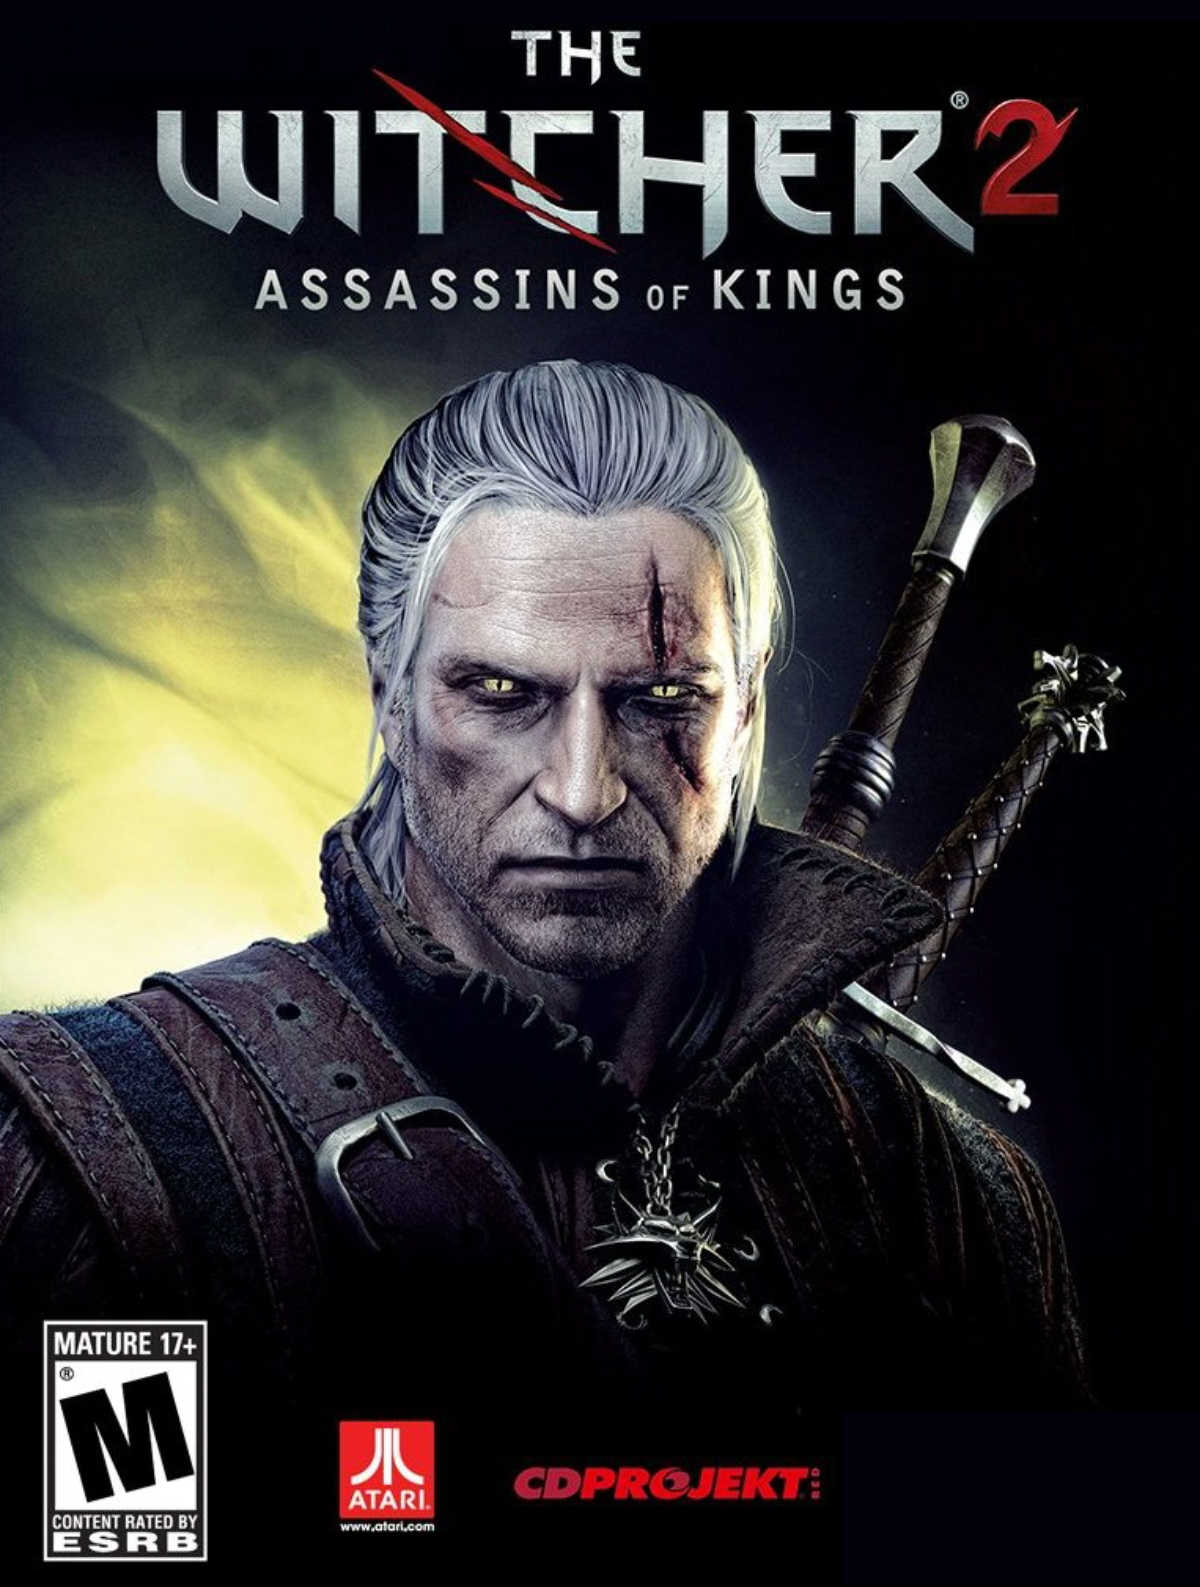 Portada de The Witcher 2: Assassins of Kings